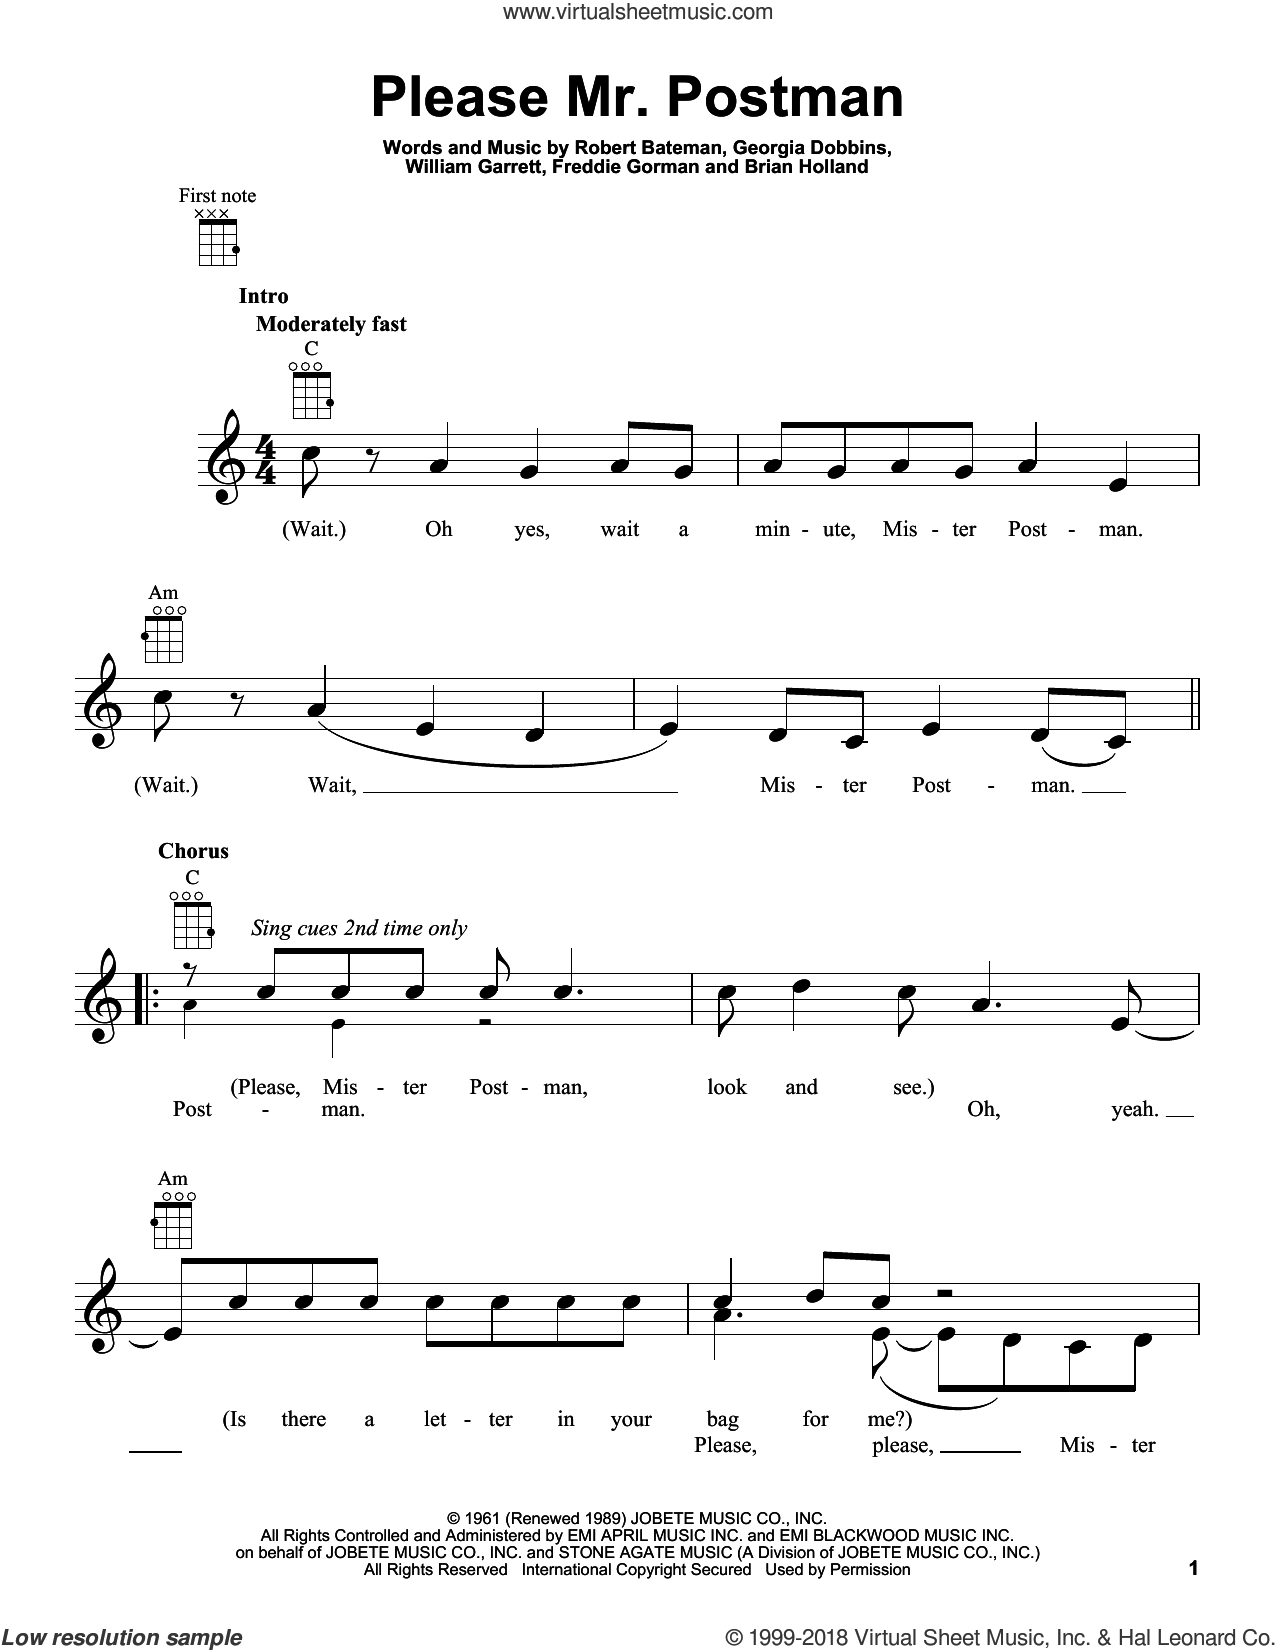 Please Mr. Postman sheet music for ukulele by The Marvelettes